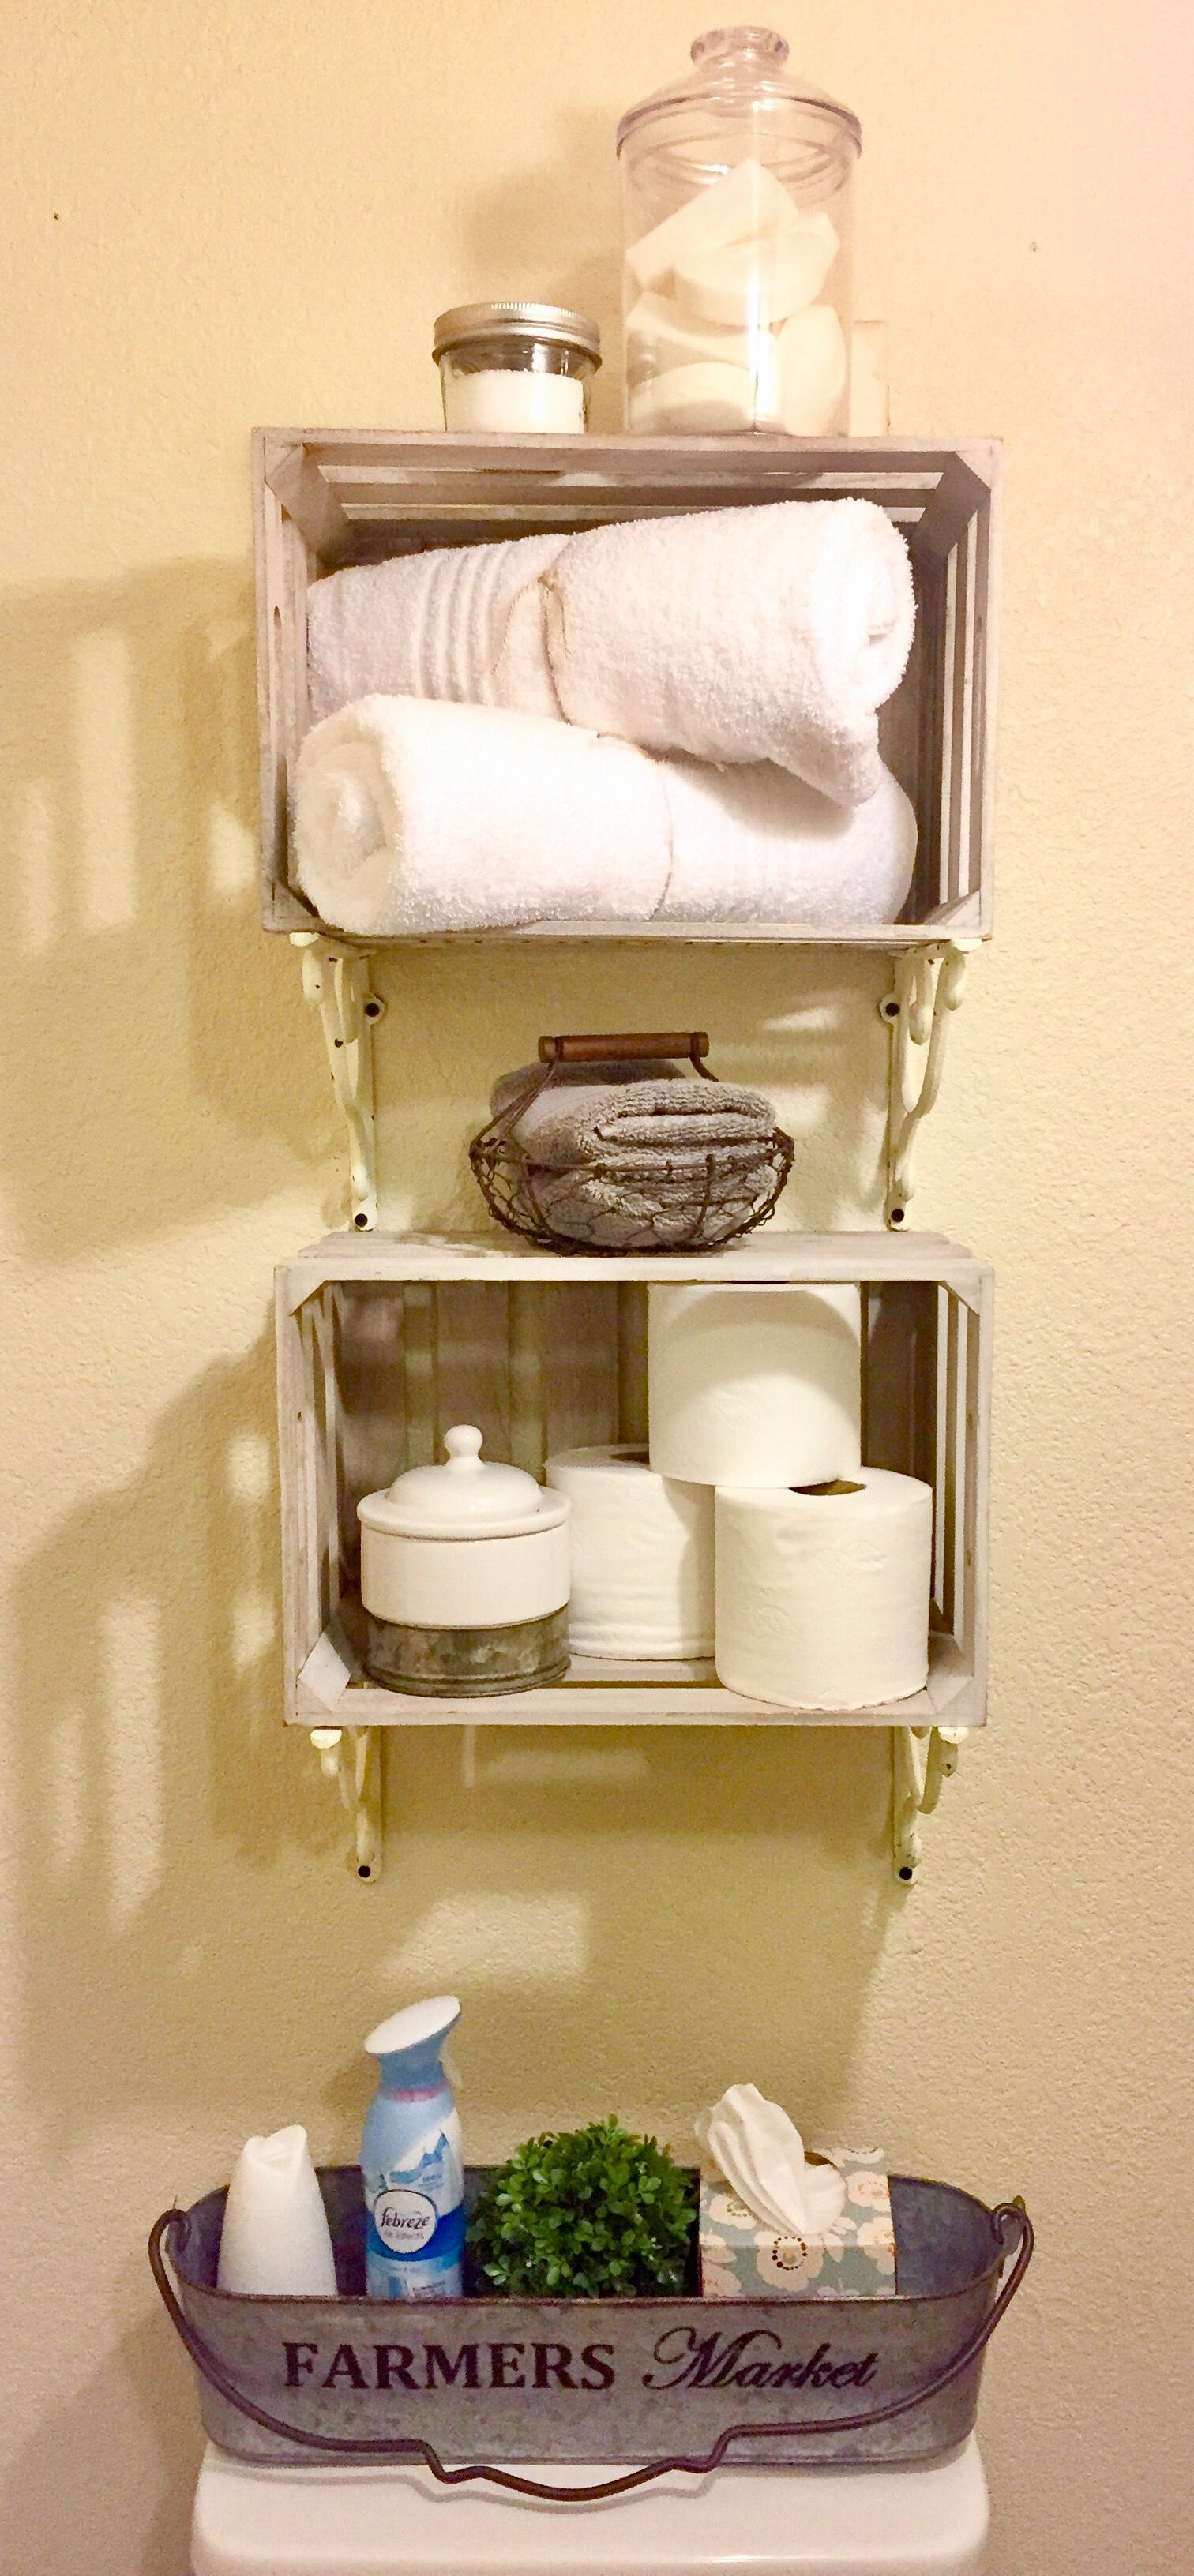 French country farmhouse bathroom storage shelves decor for French bathroom decor